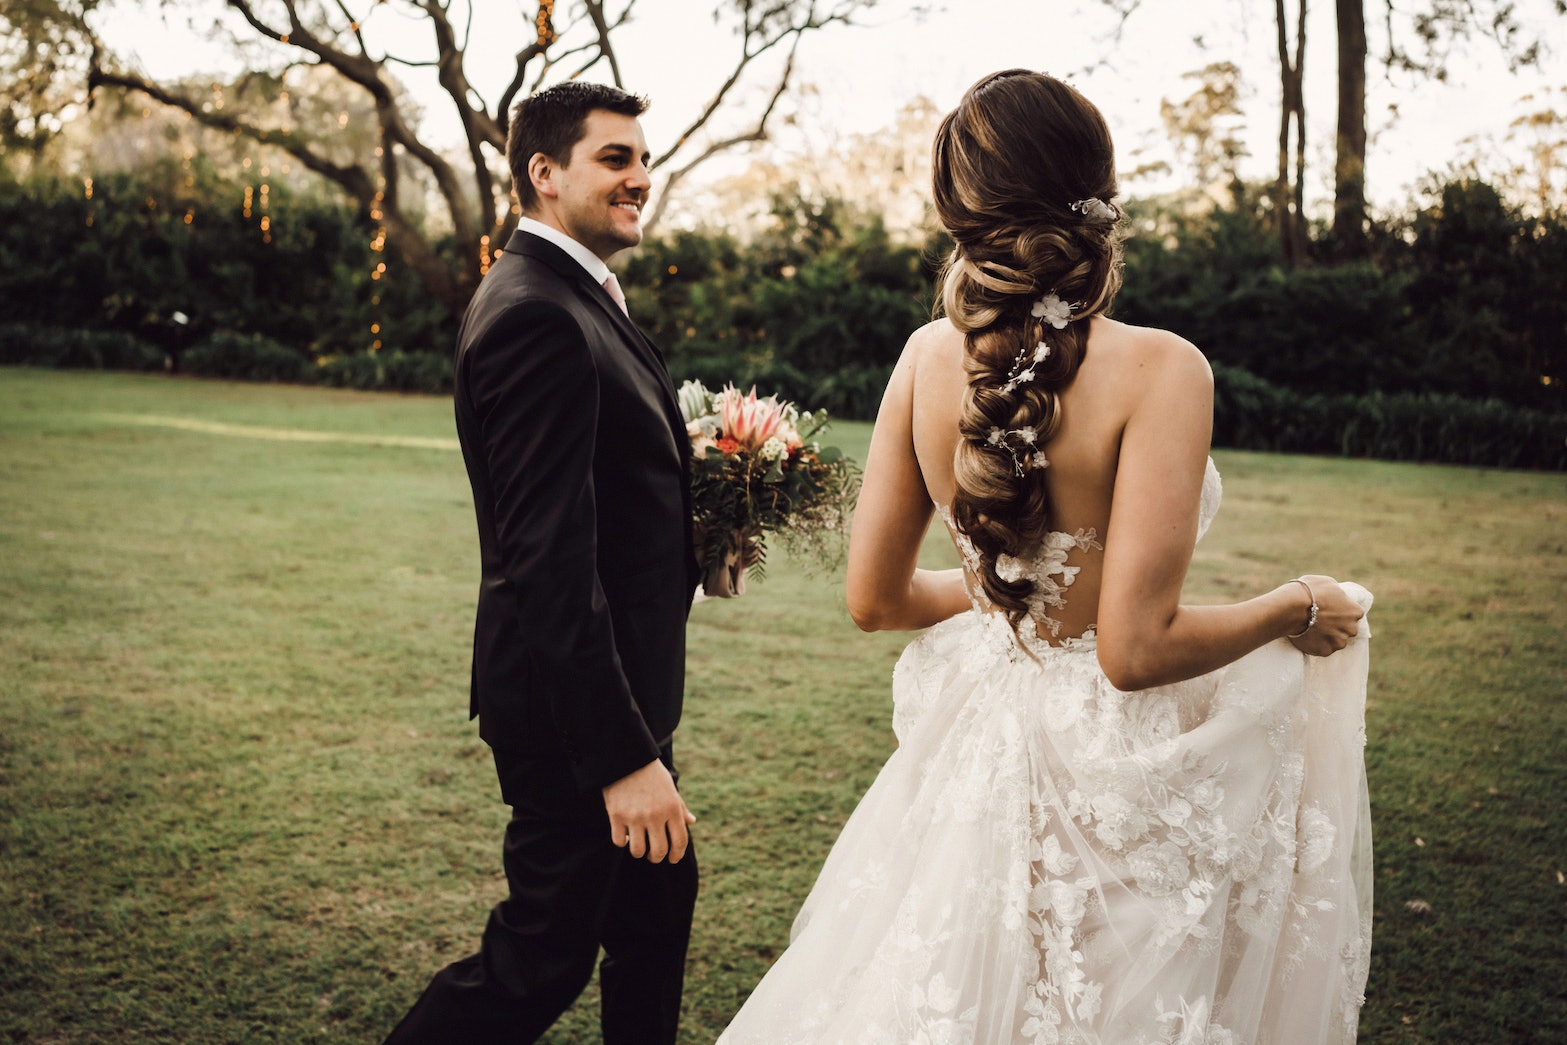 Bride and Groom walking along smiling at each other